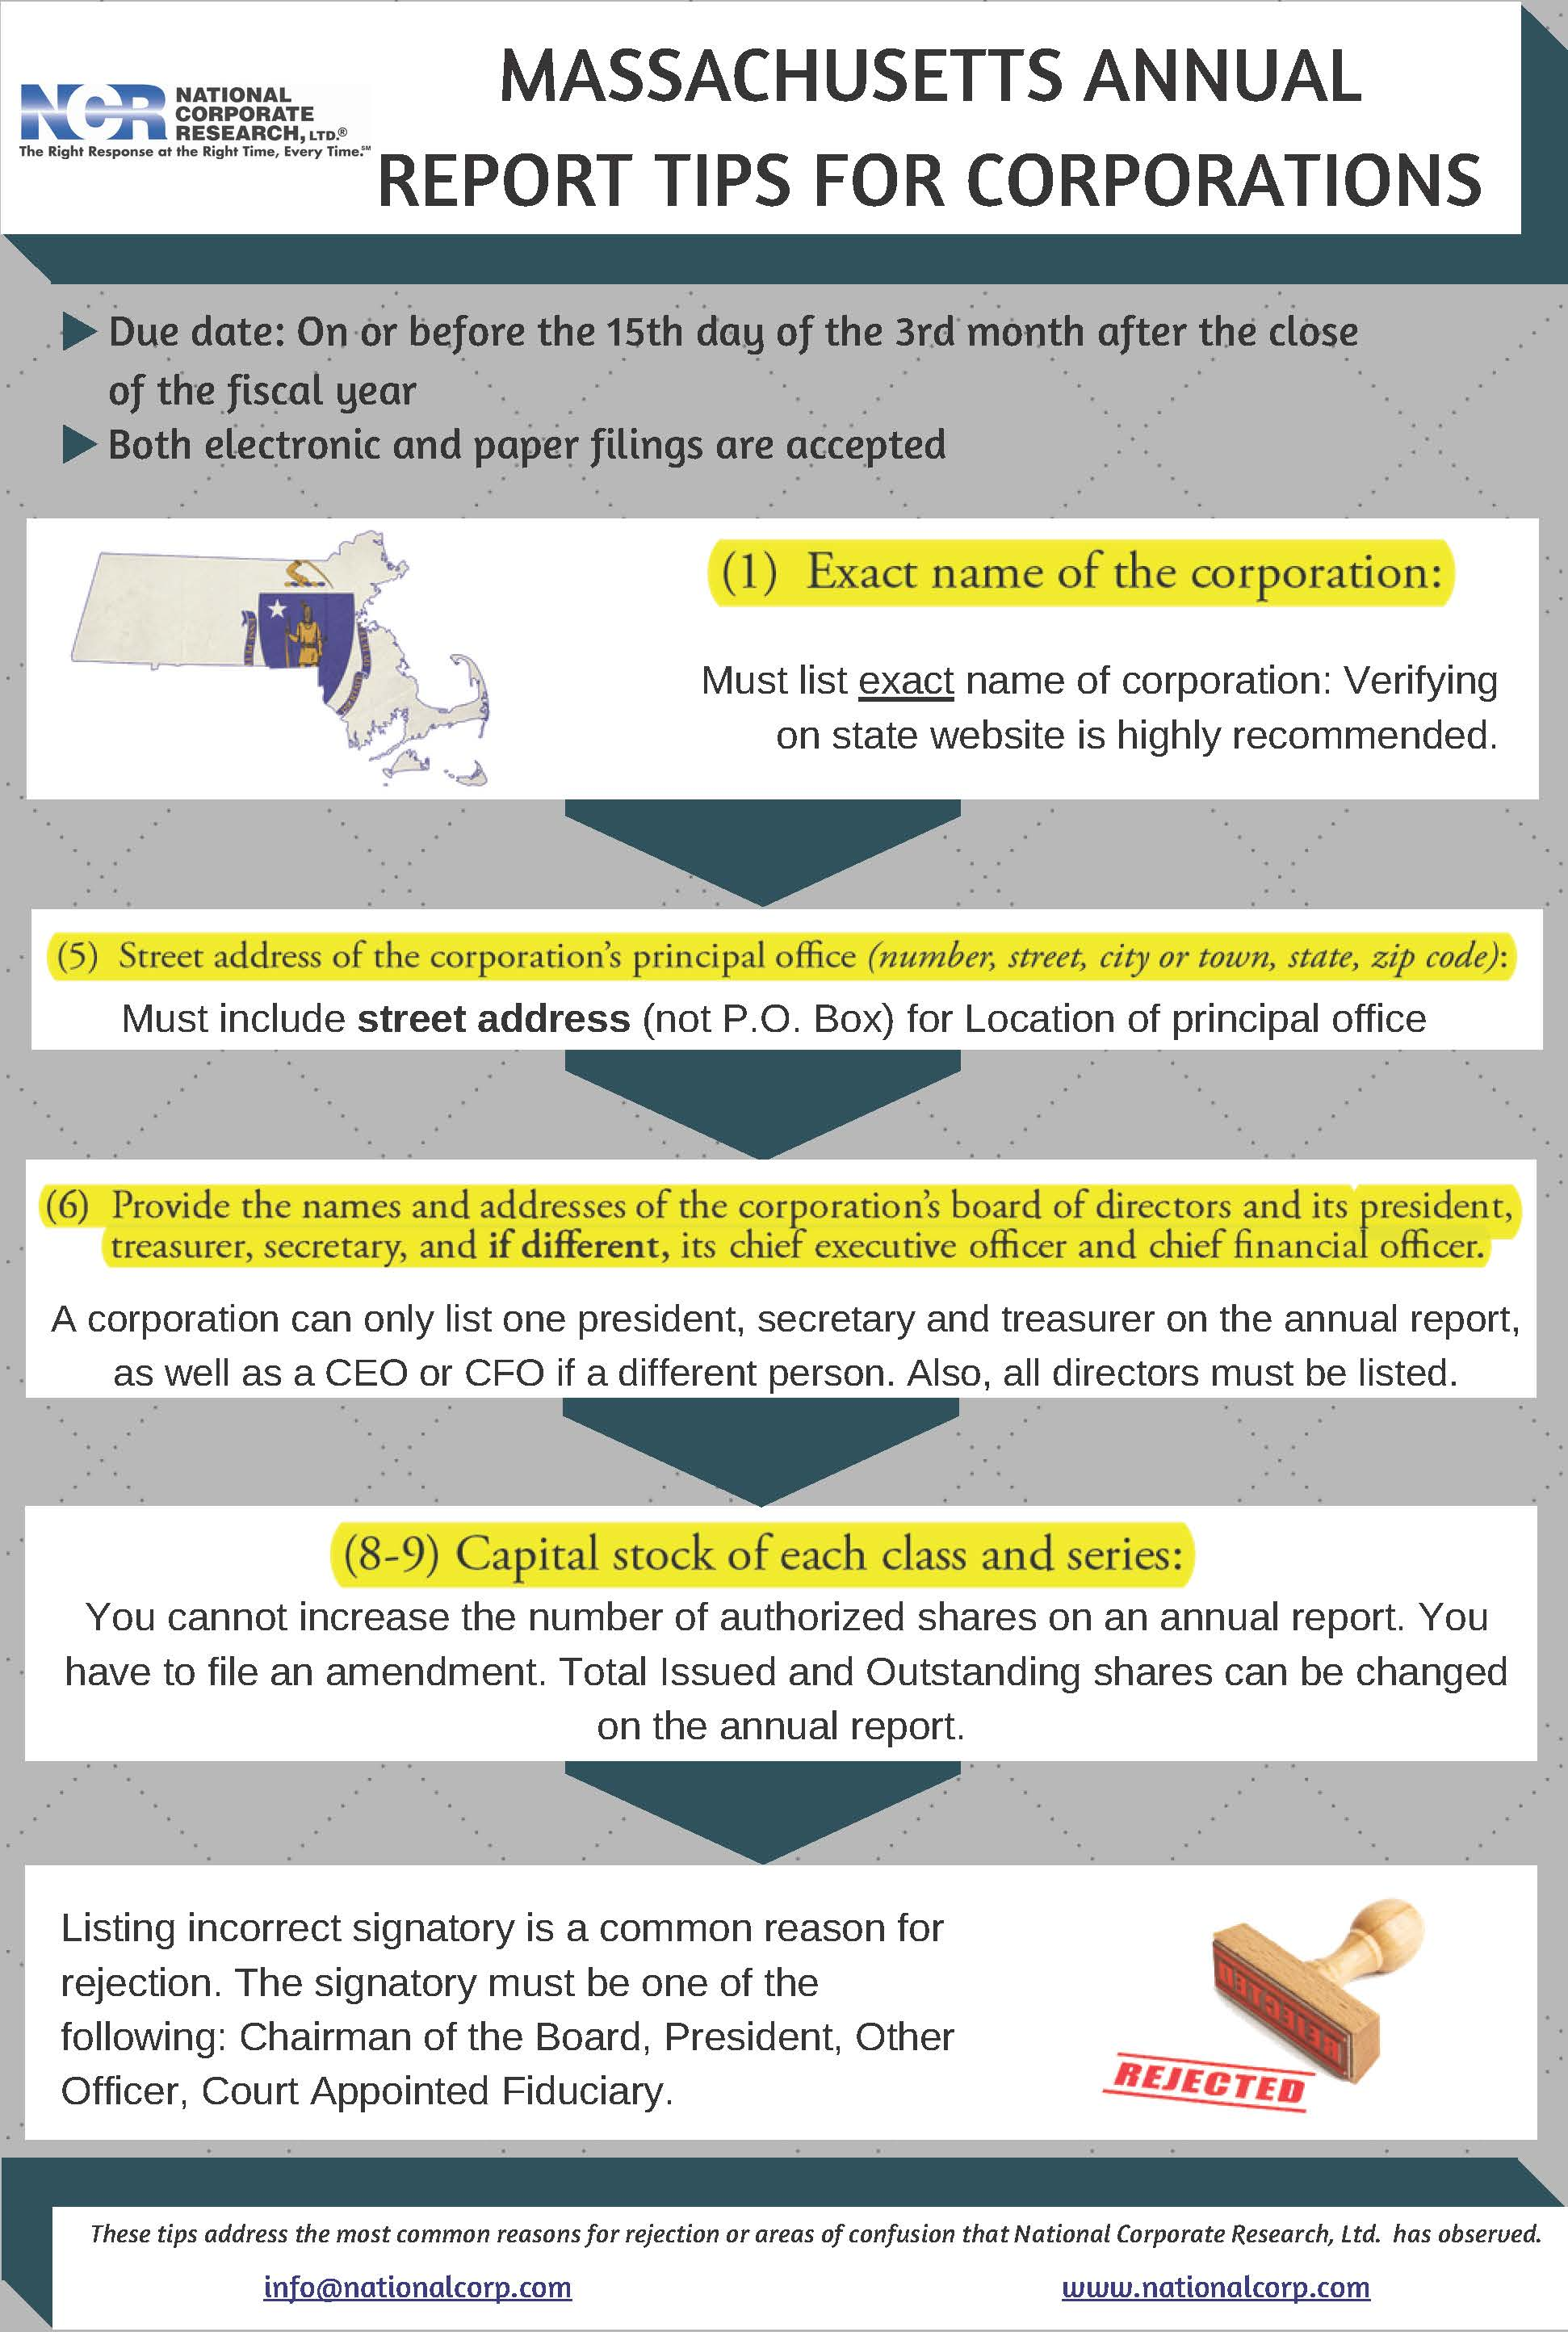 Massachusetts Annual Report Tips for Corporations [infographic]